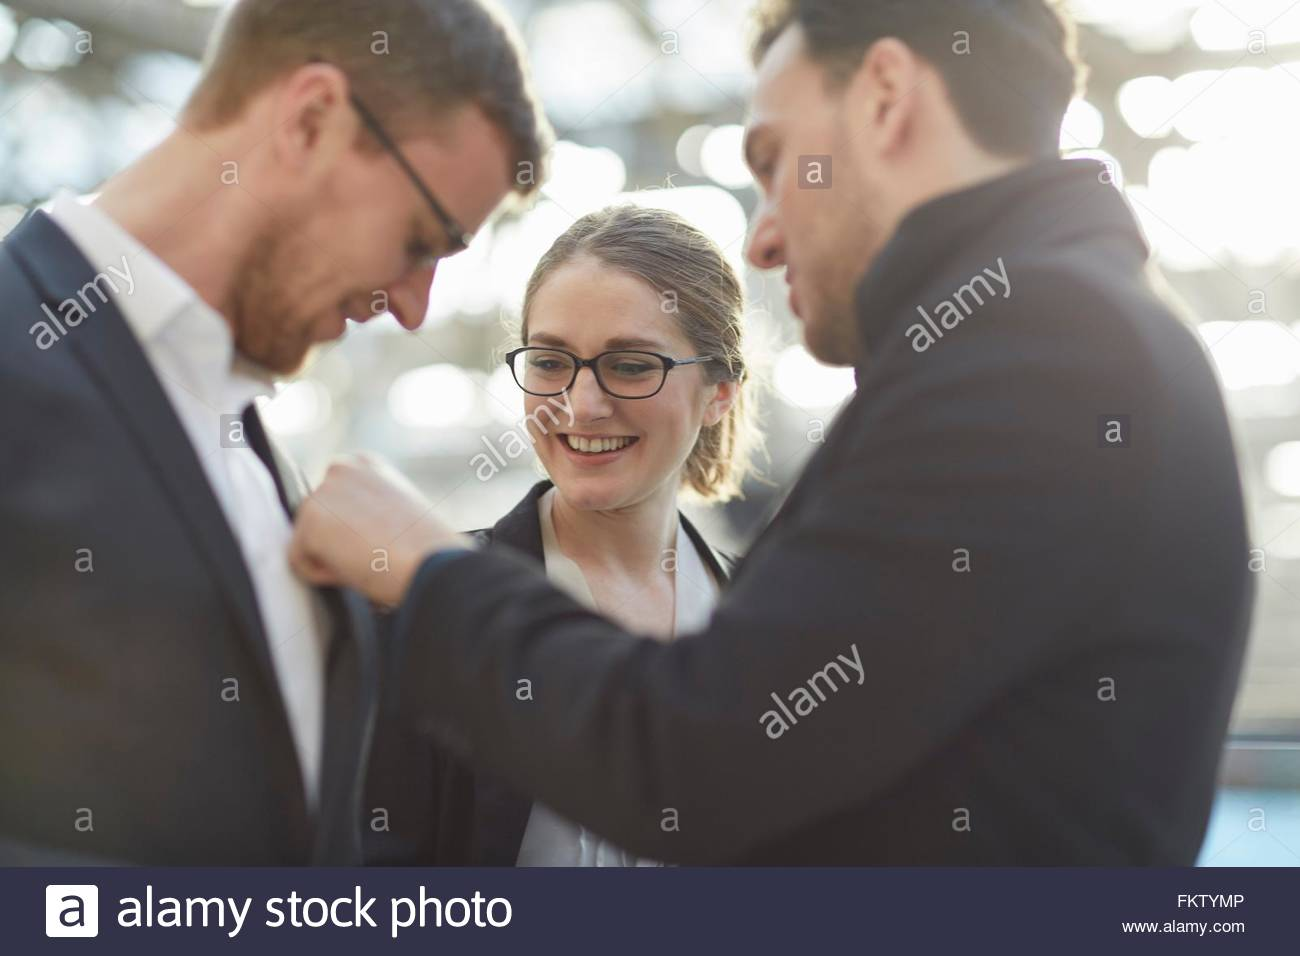 Side view of mid adult man adjusting colleagues pocket handkerchief - Stock Image